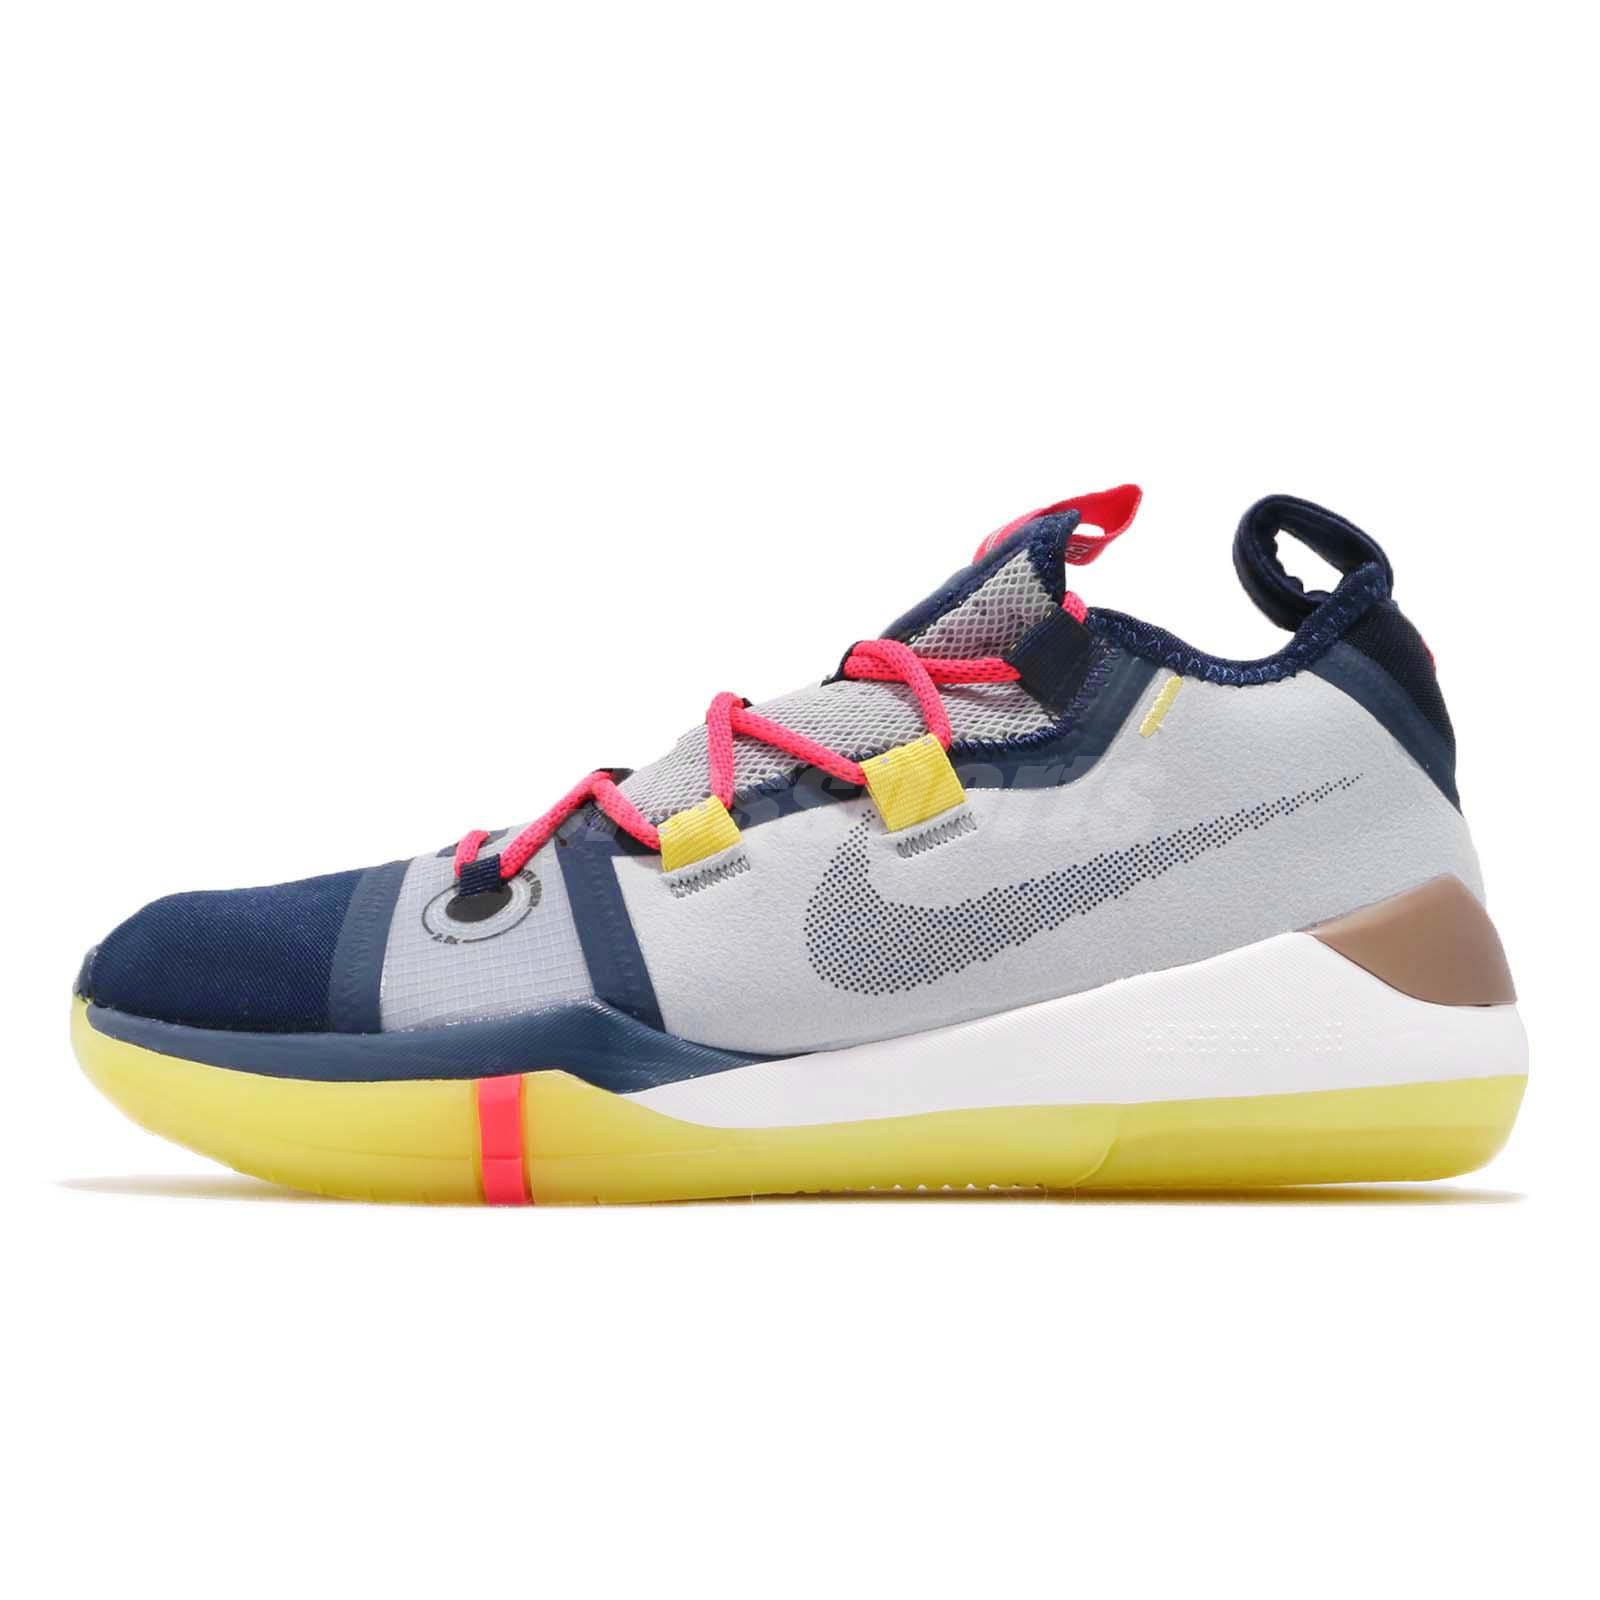 af275b1023c Nike KOBE AD Mamba Day A.D. EP Sail Multi-Color Mens Basketball Shoes AV3556 -100